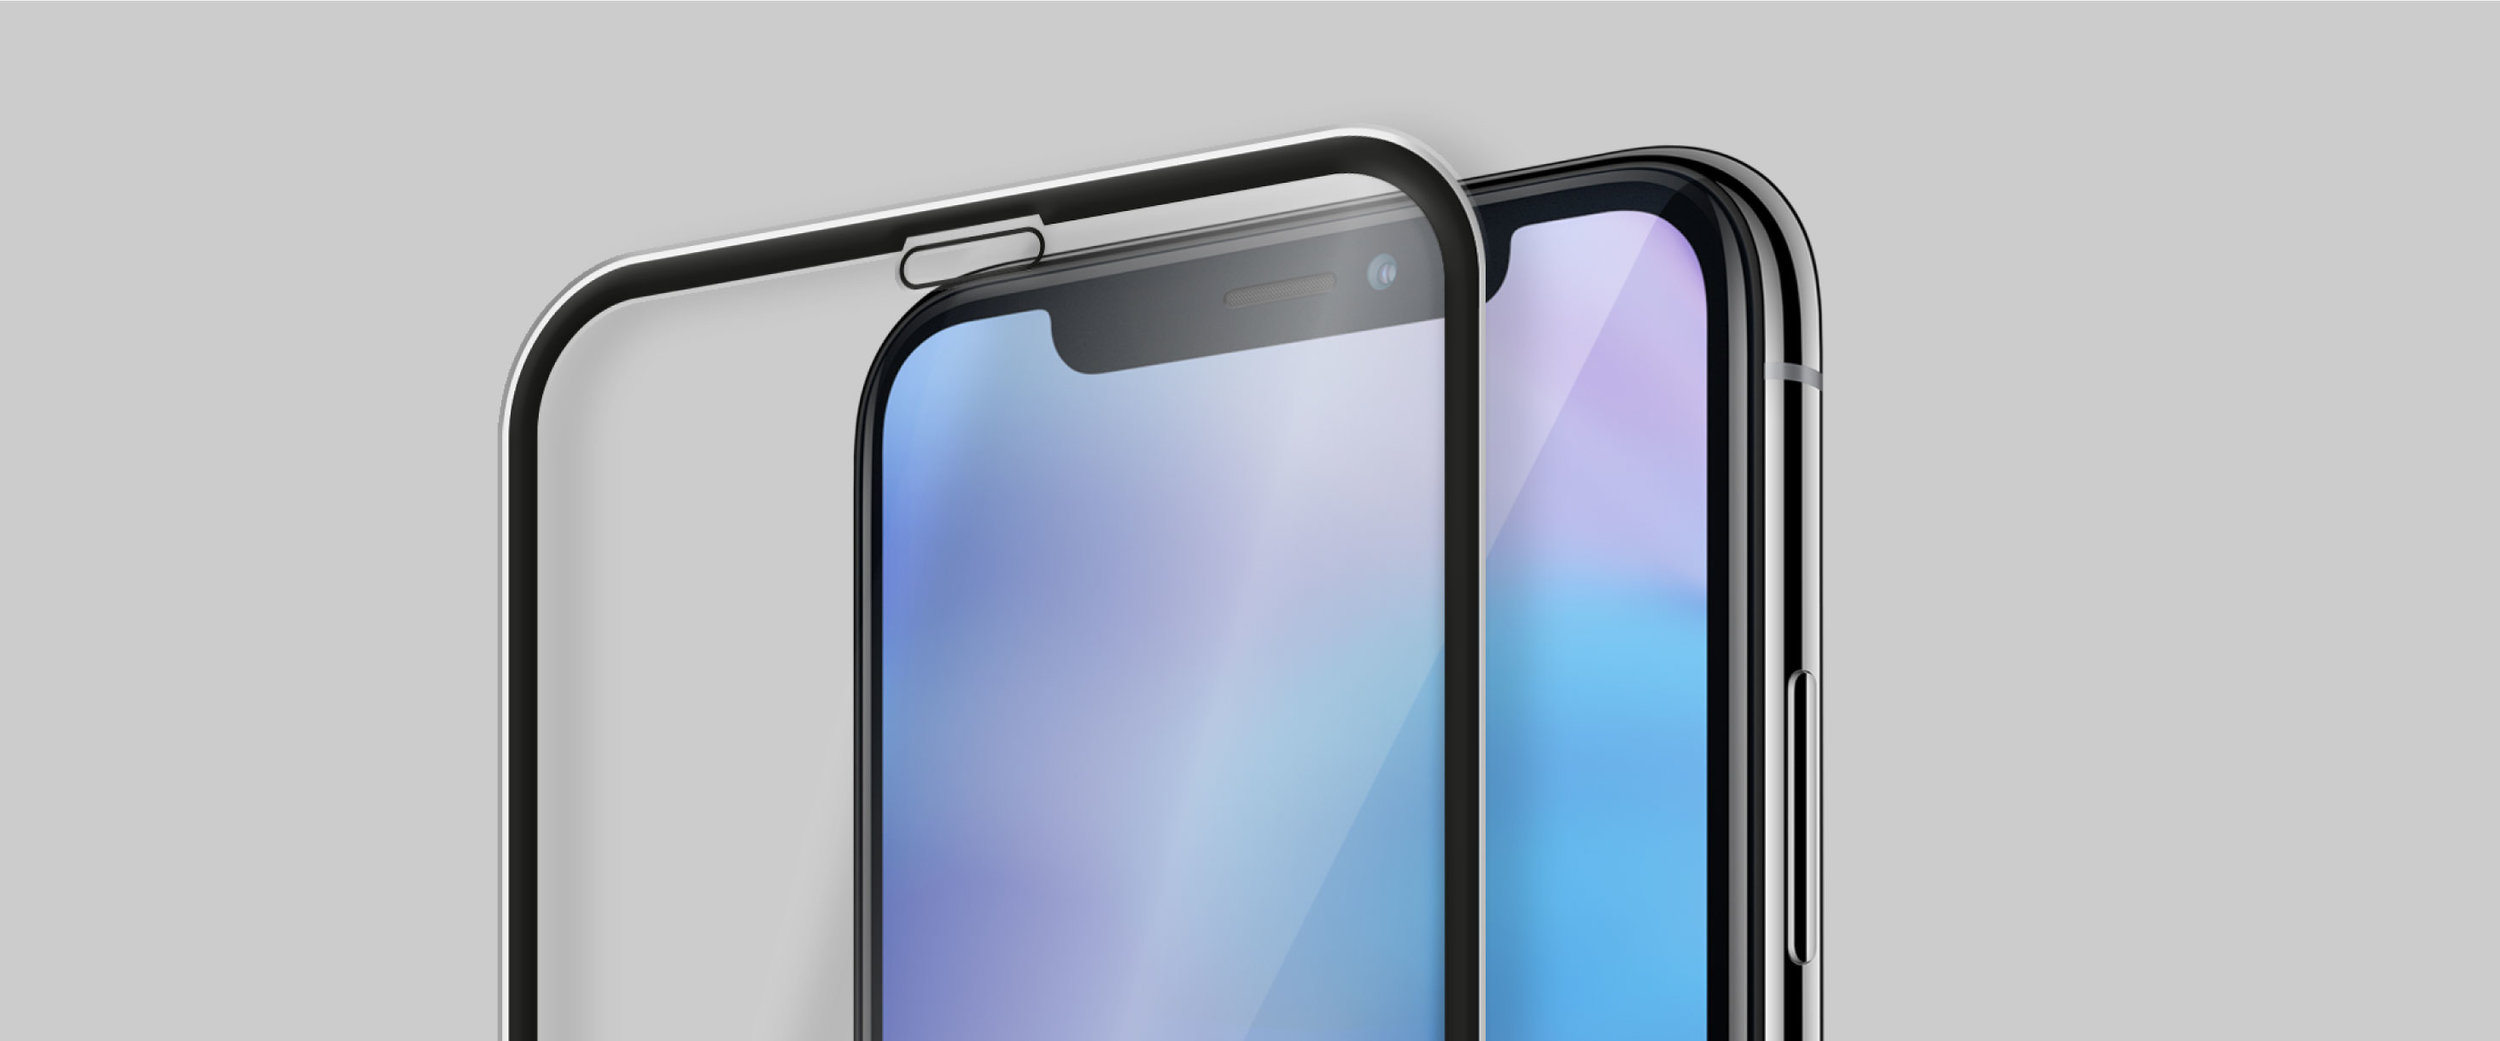 TEMPERED GLASS SCREEN PROTECTOR -